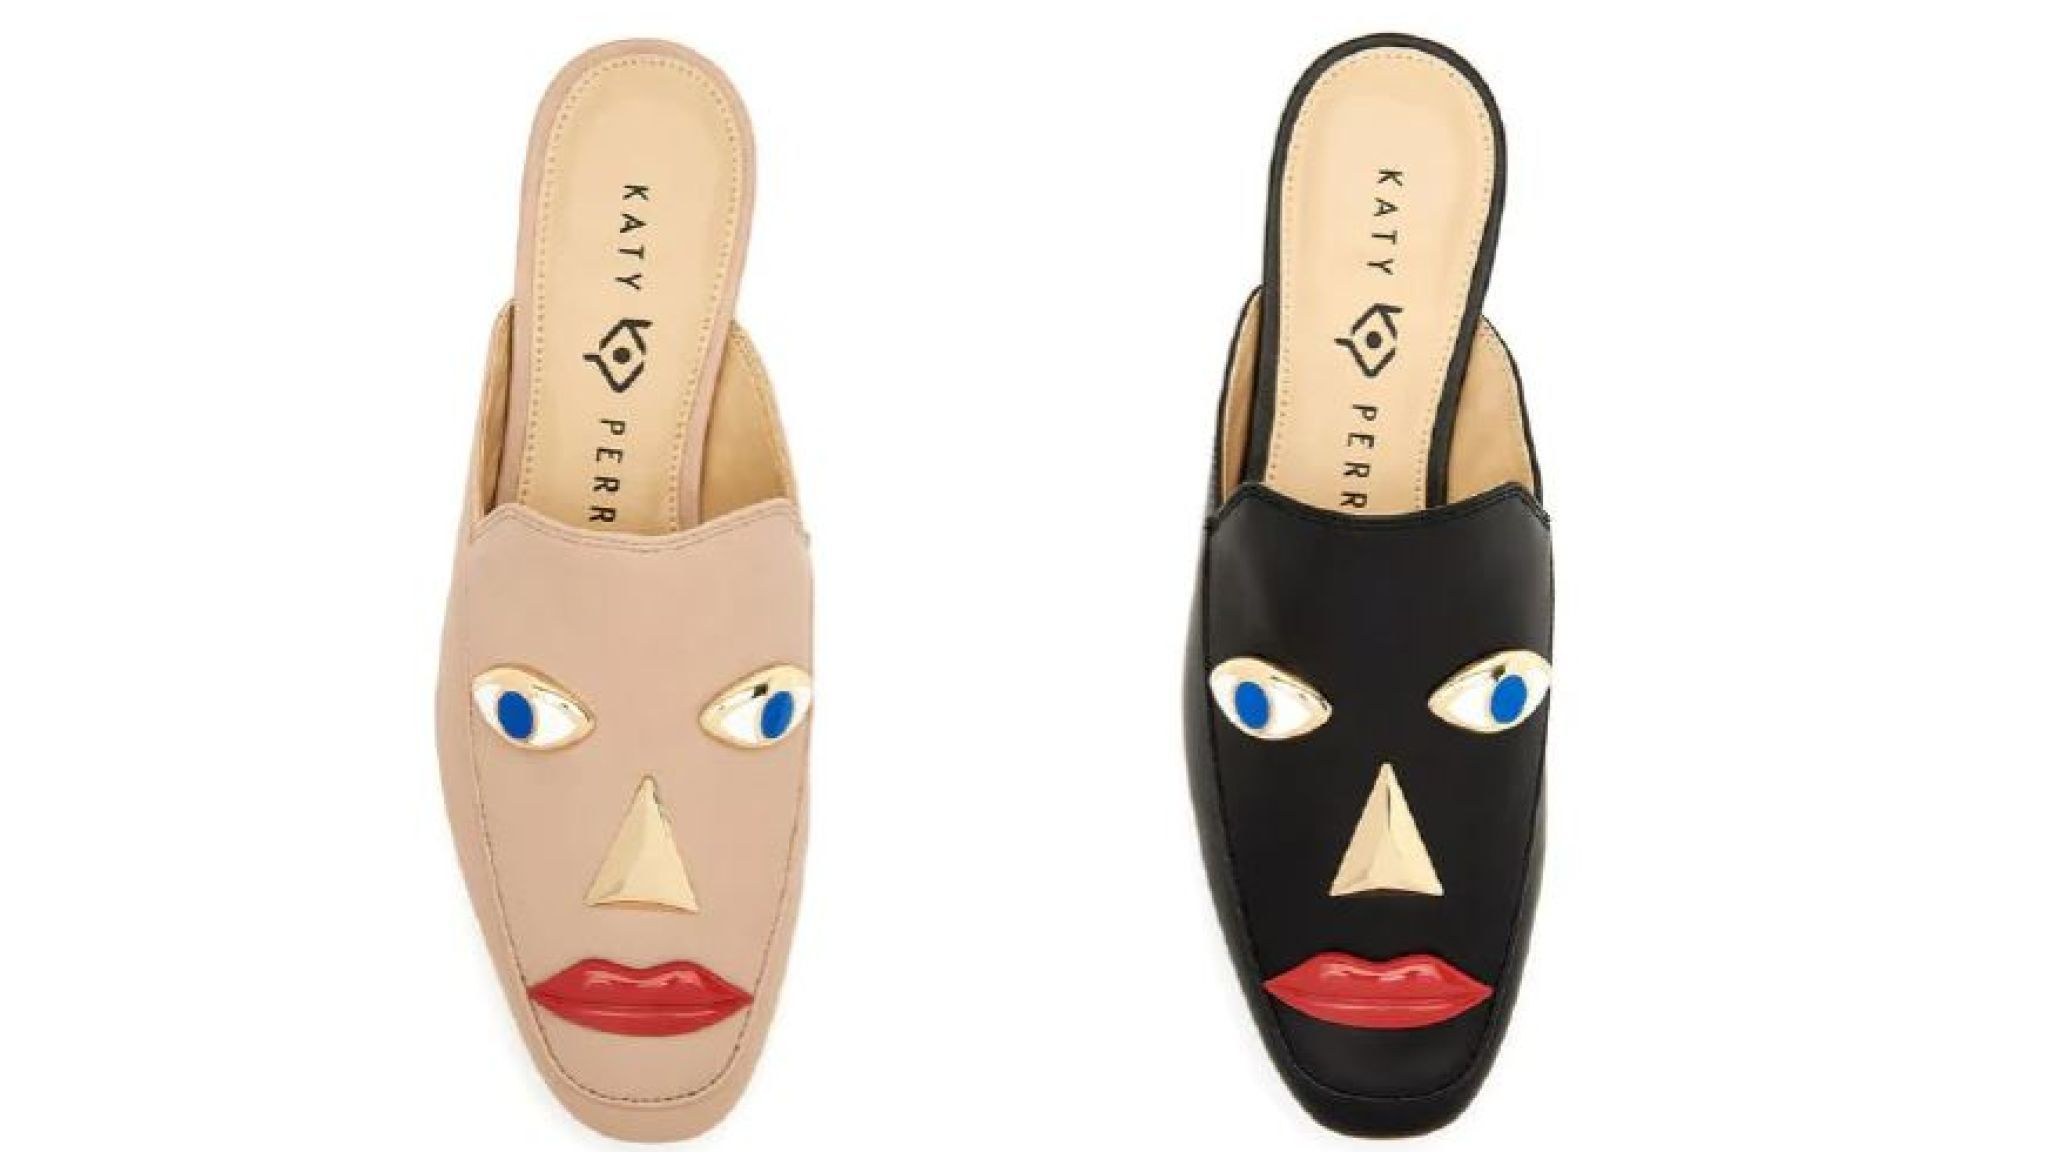 Katy Perry 'saddened' as her shoe line is taken off shelves for being racist 1